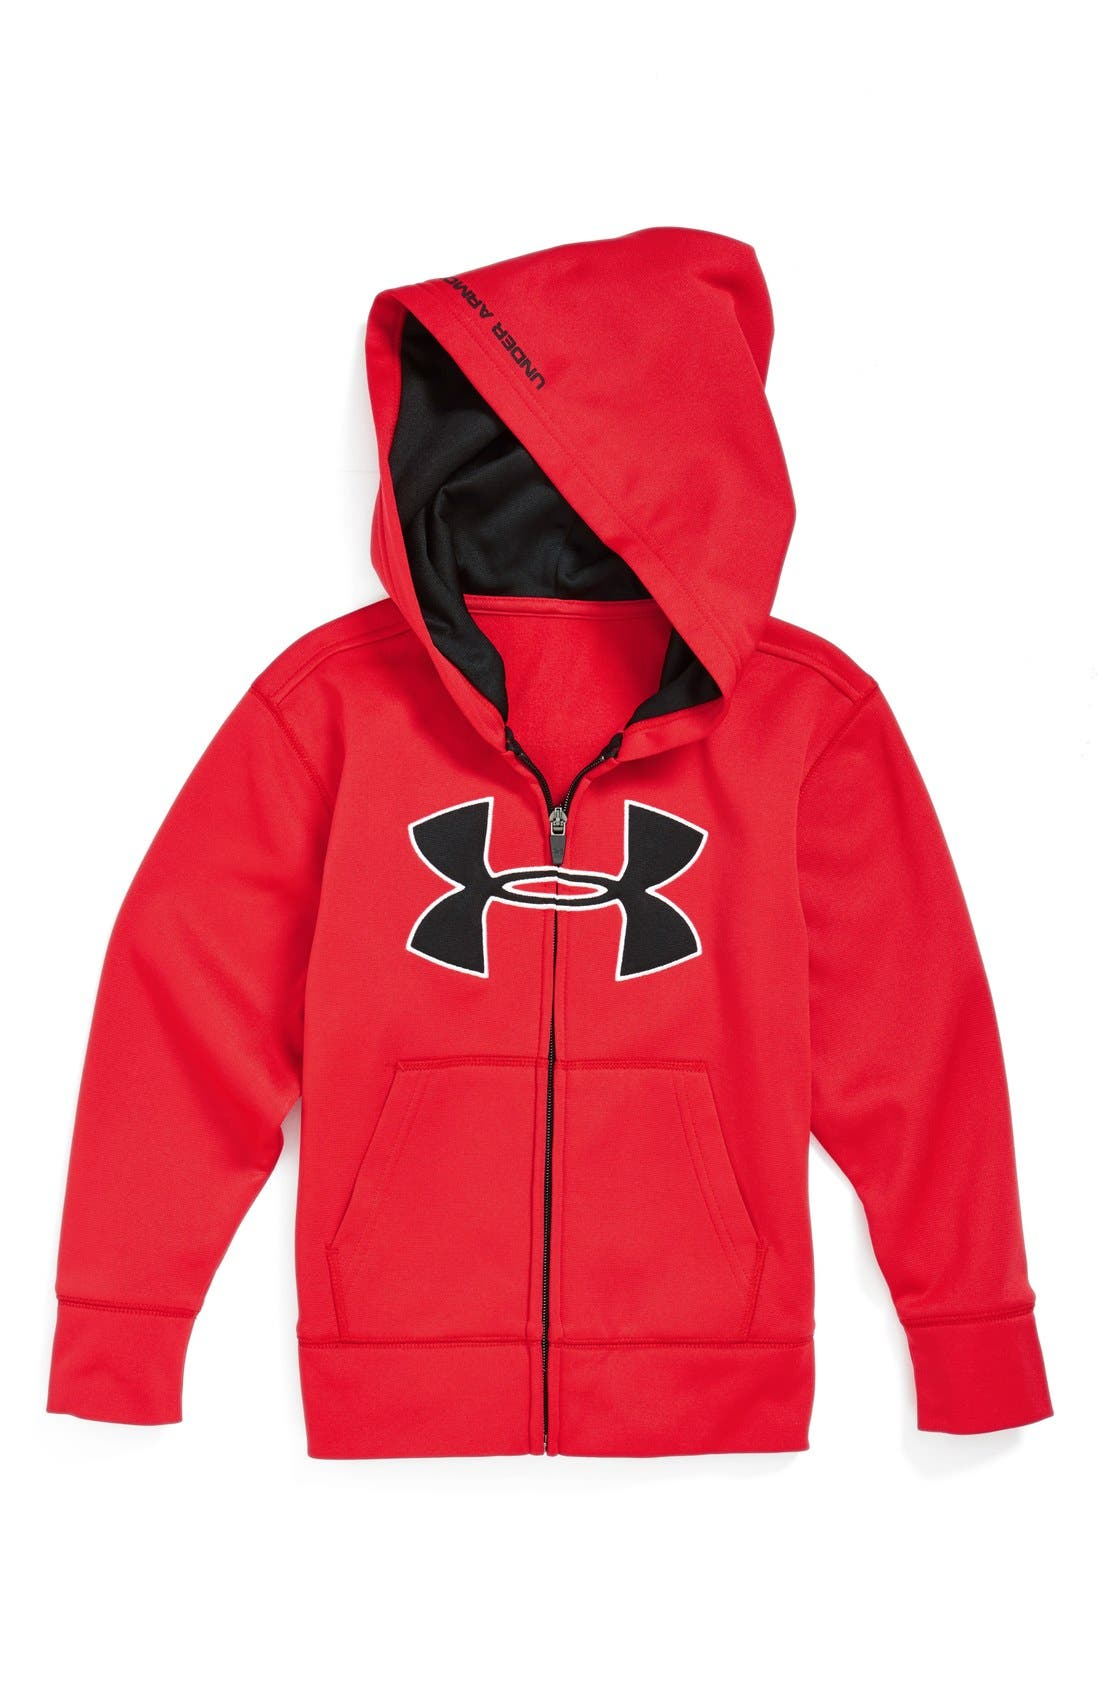 Main Image - Under Armour Warm-Up Zip Hoodie (Toddler Boys & Little Boys)